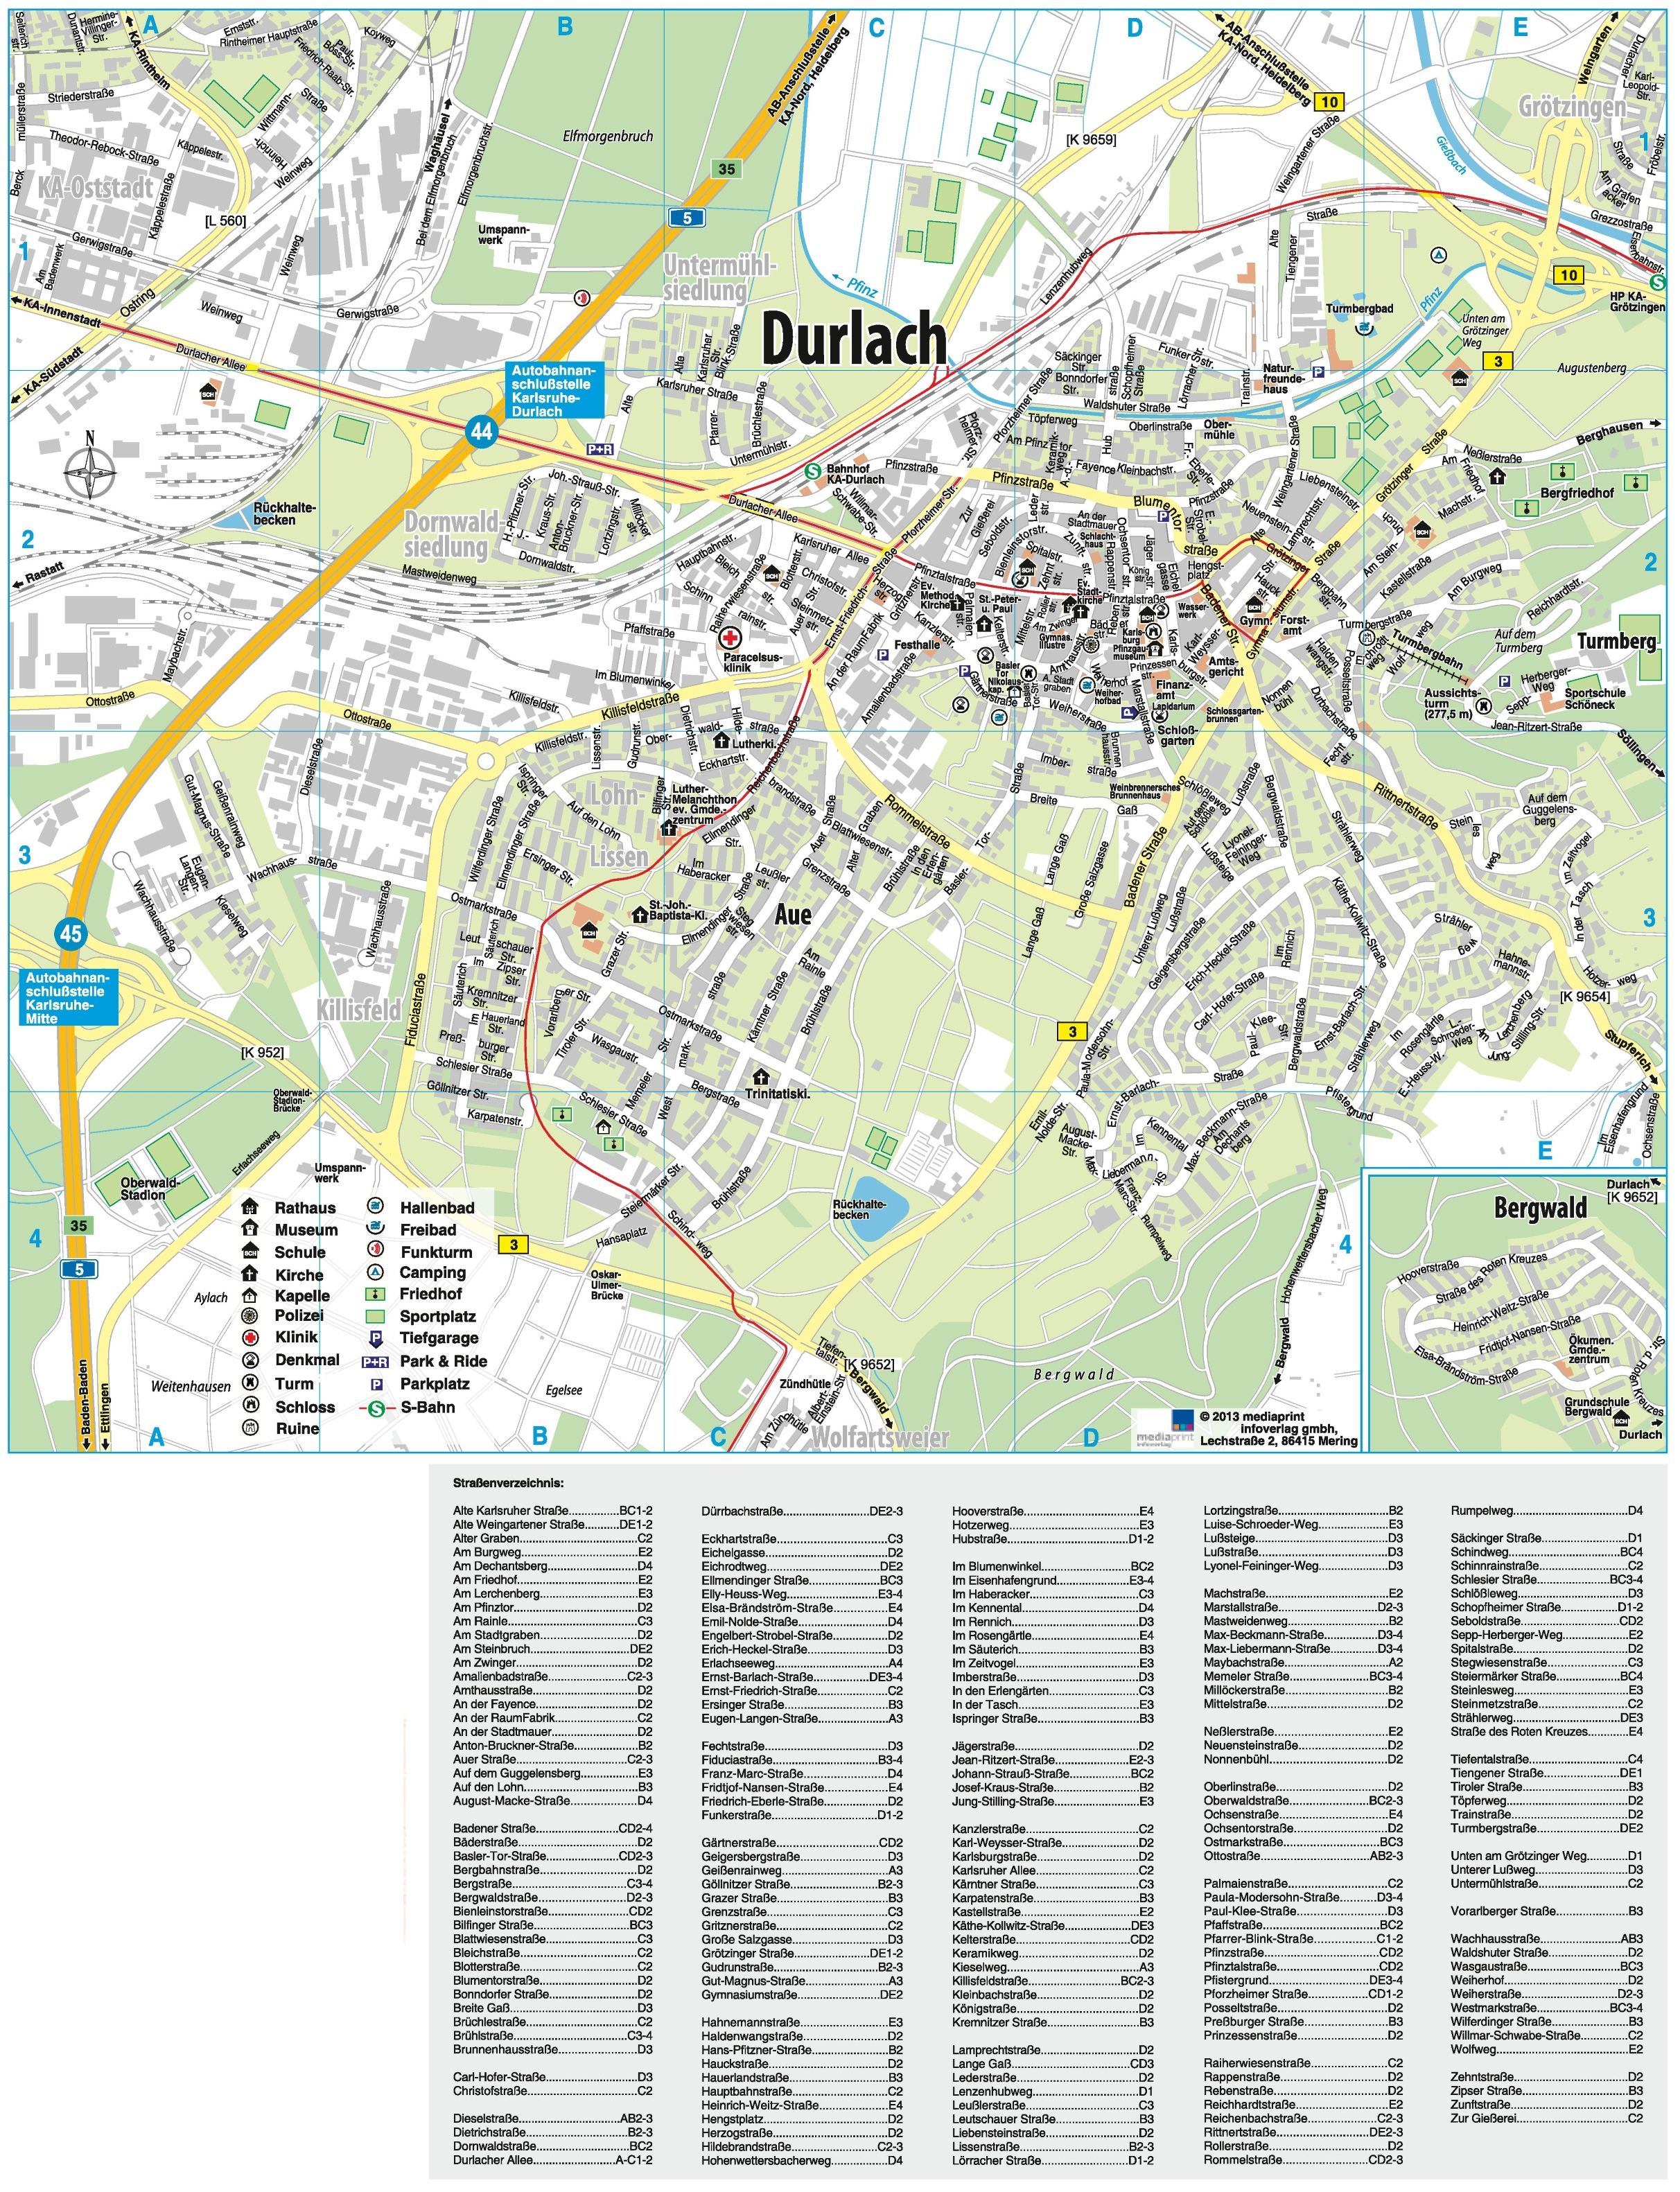 Karlsruhe Map Of Germany.Karlsruhe Durlach Map